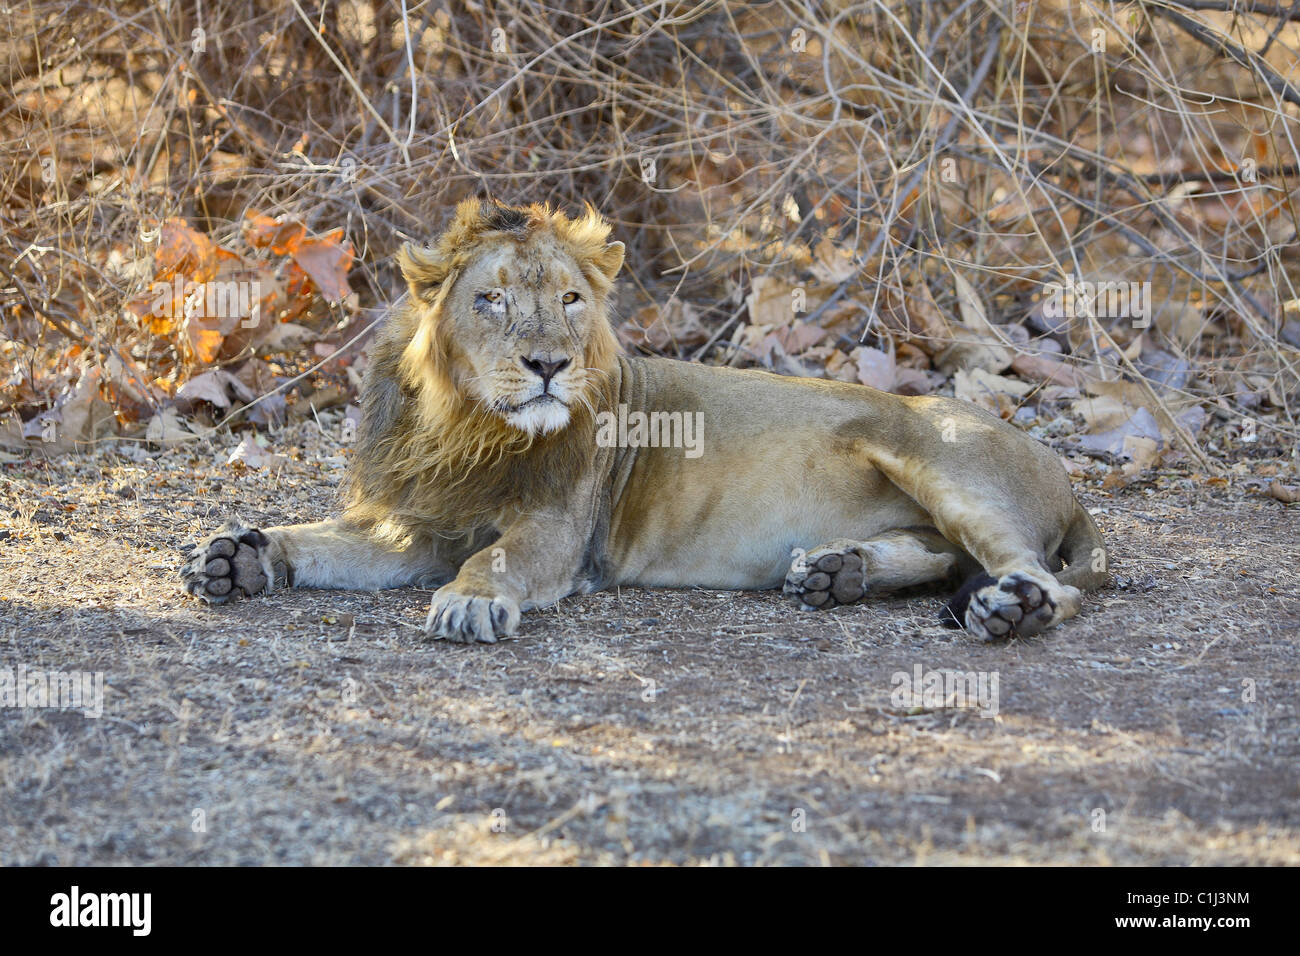 Asiatic Lion (Panthera leo persica) sitting in the forest at Gir National Park Gujrat India - Stock Image